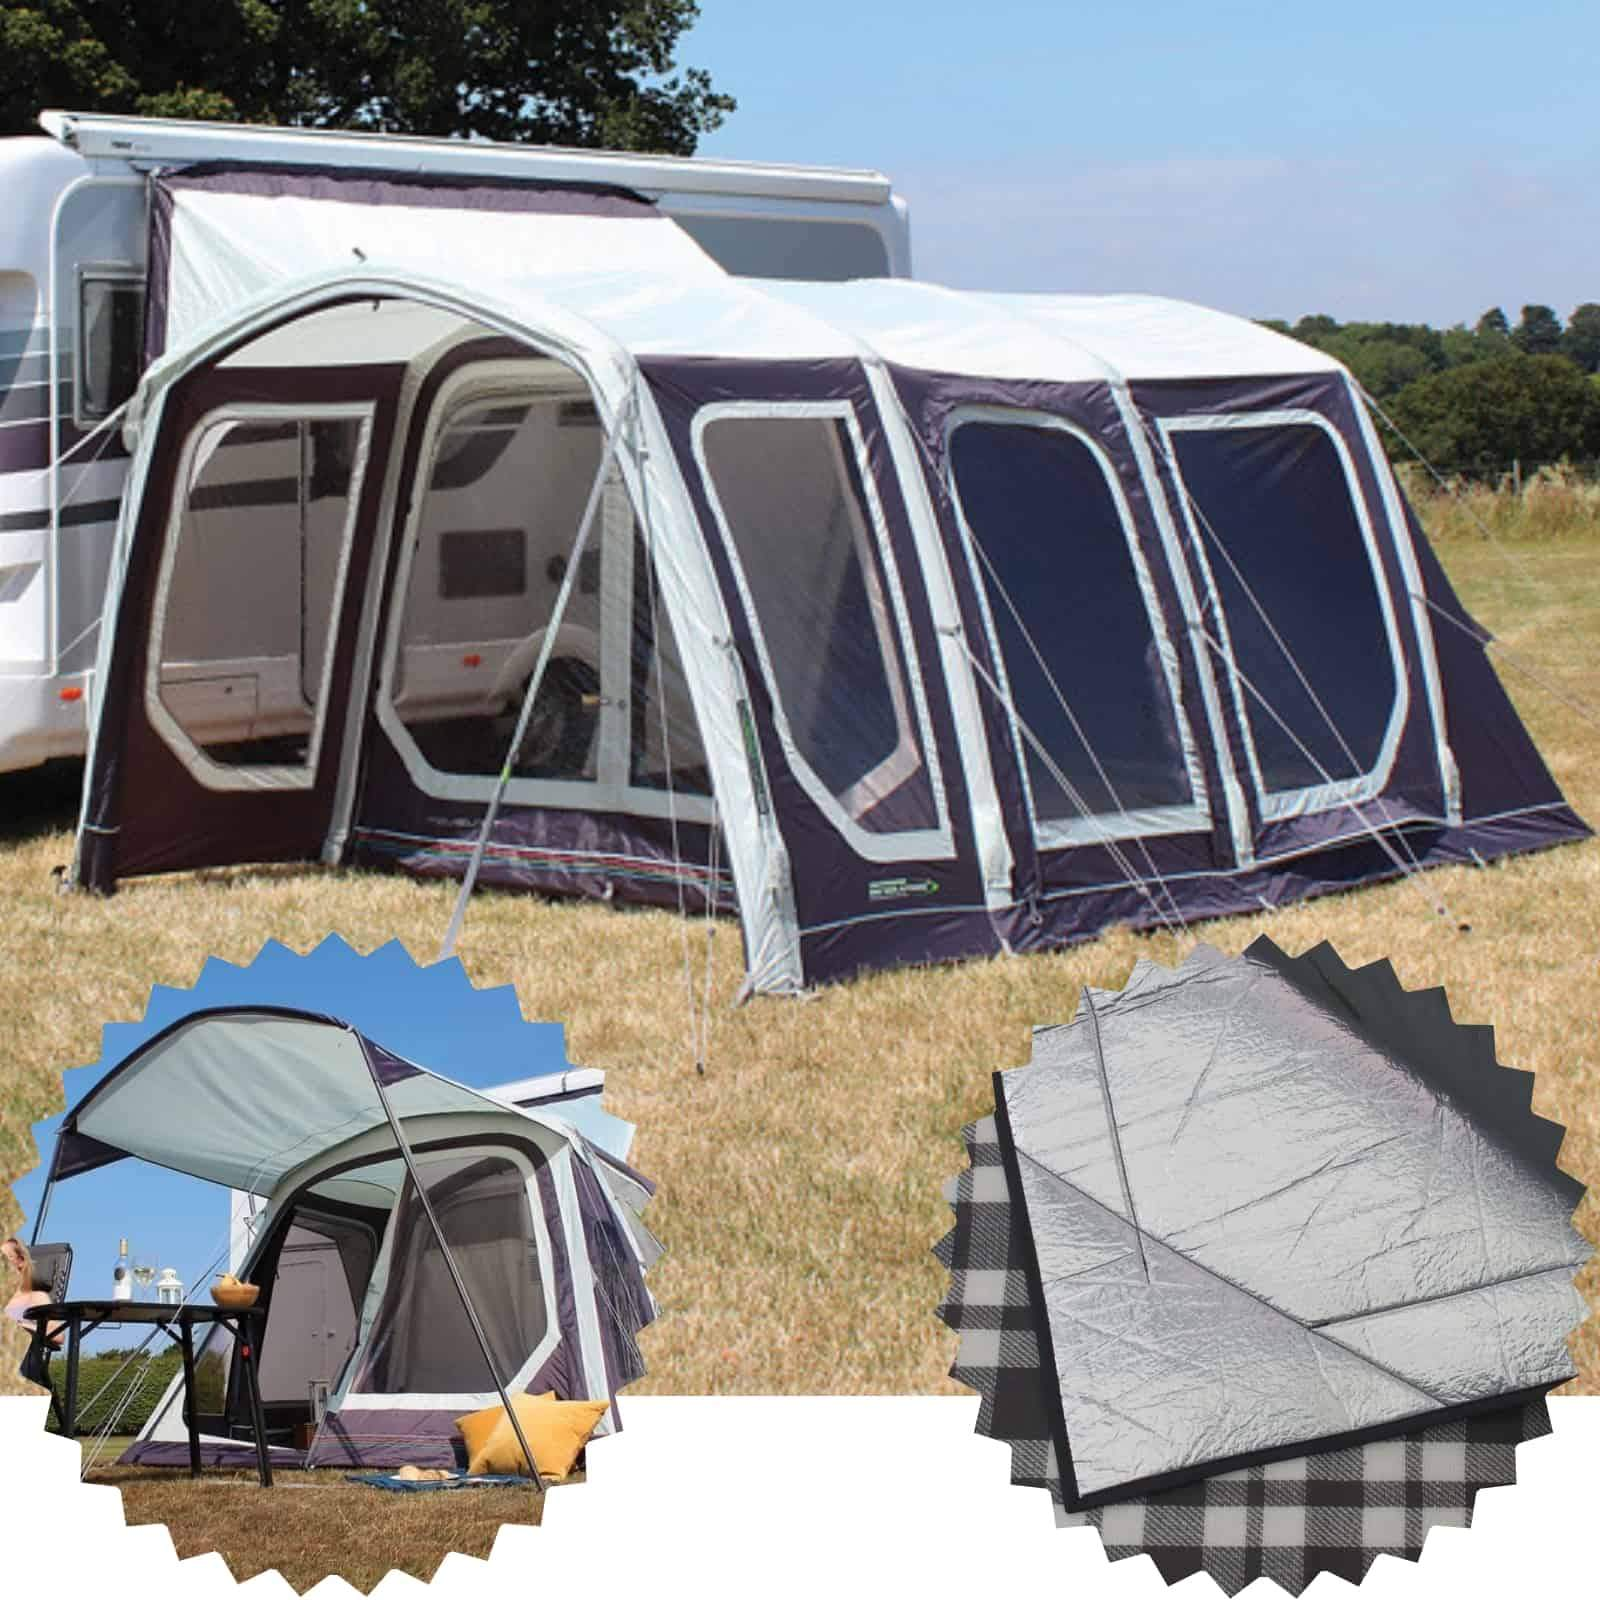 Outdoor Revolution Movelite T4 High Driveaway Awning + Canopy & Carpet Bundle (2020)